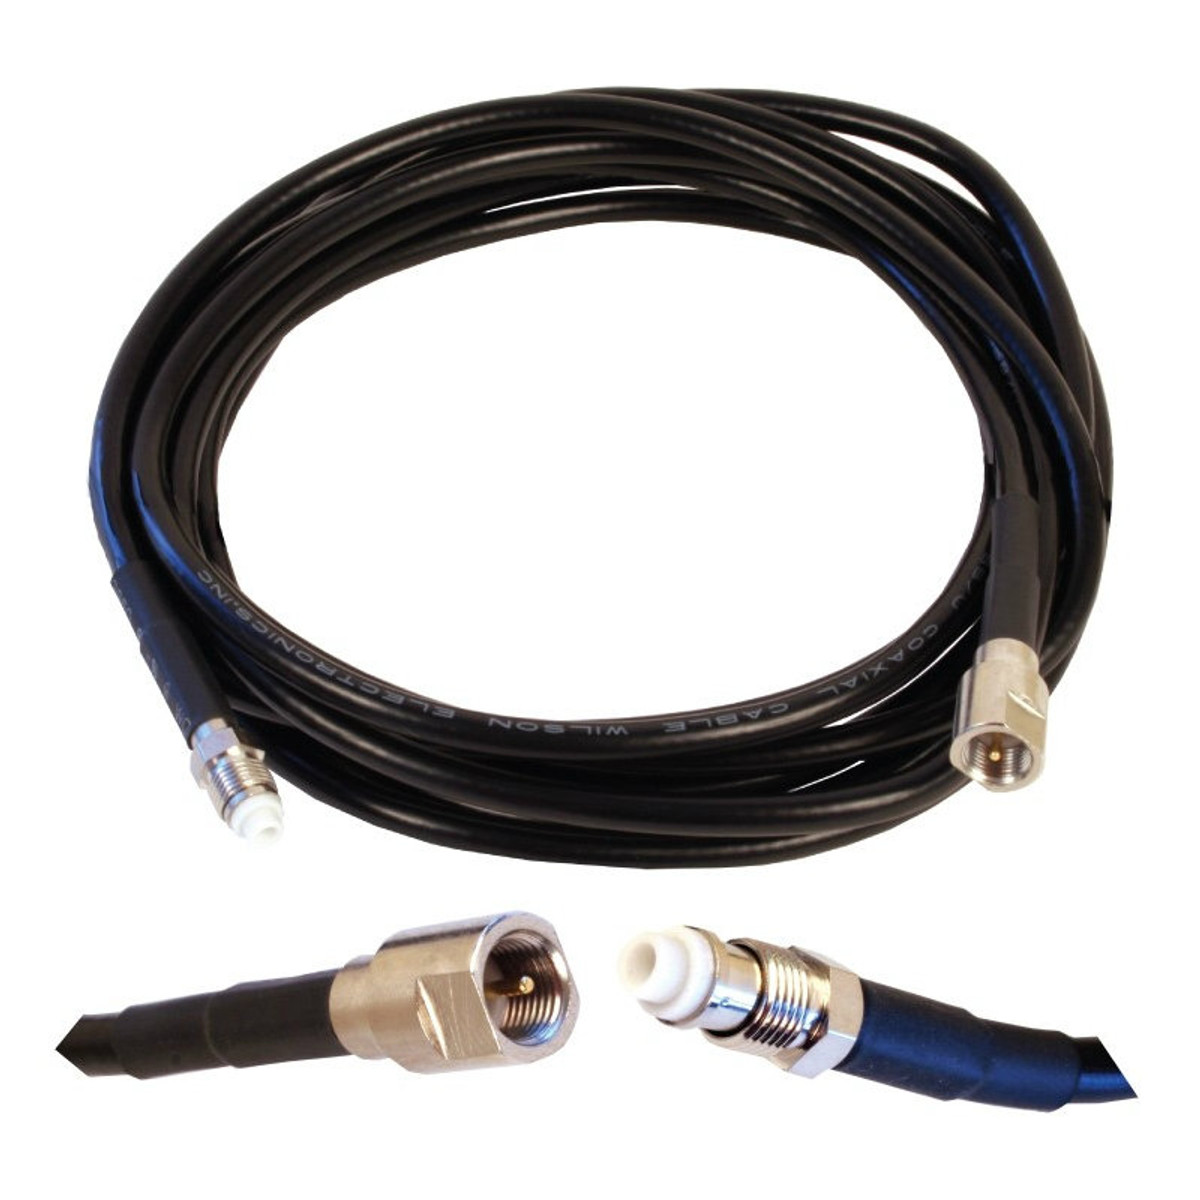 Wilson 951120 10-Foot Black Extension Cable RG58U Low Loss Foam Coaxial w/ N-Male ''Î'''_to FME Female Connectors, detail